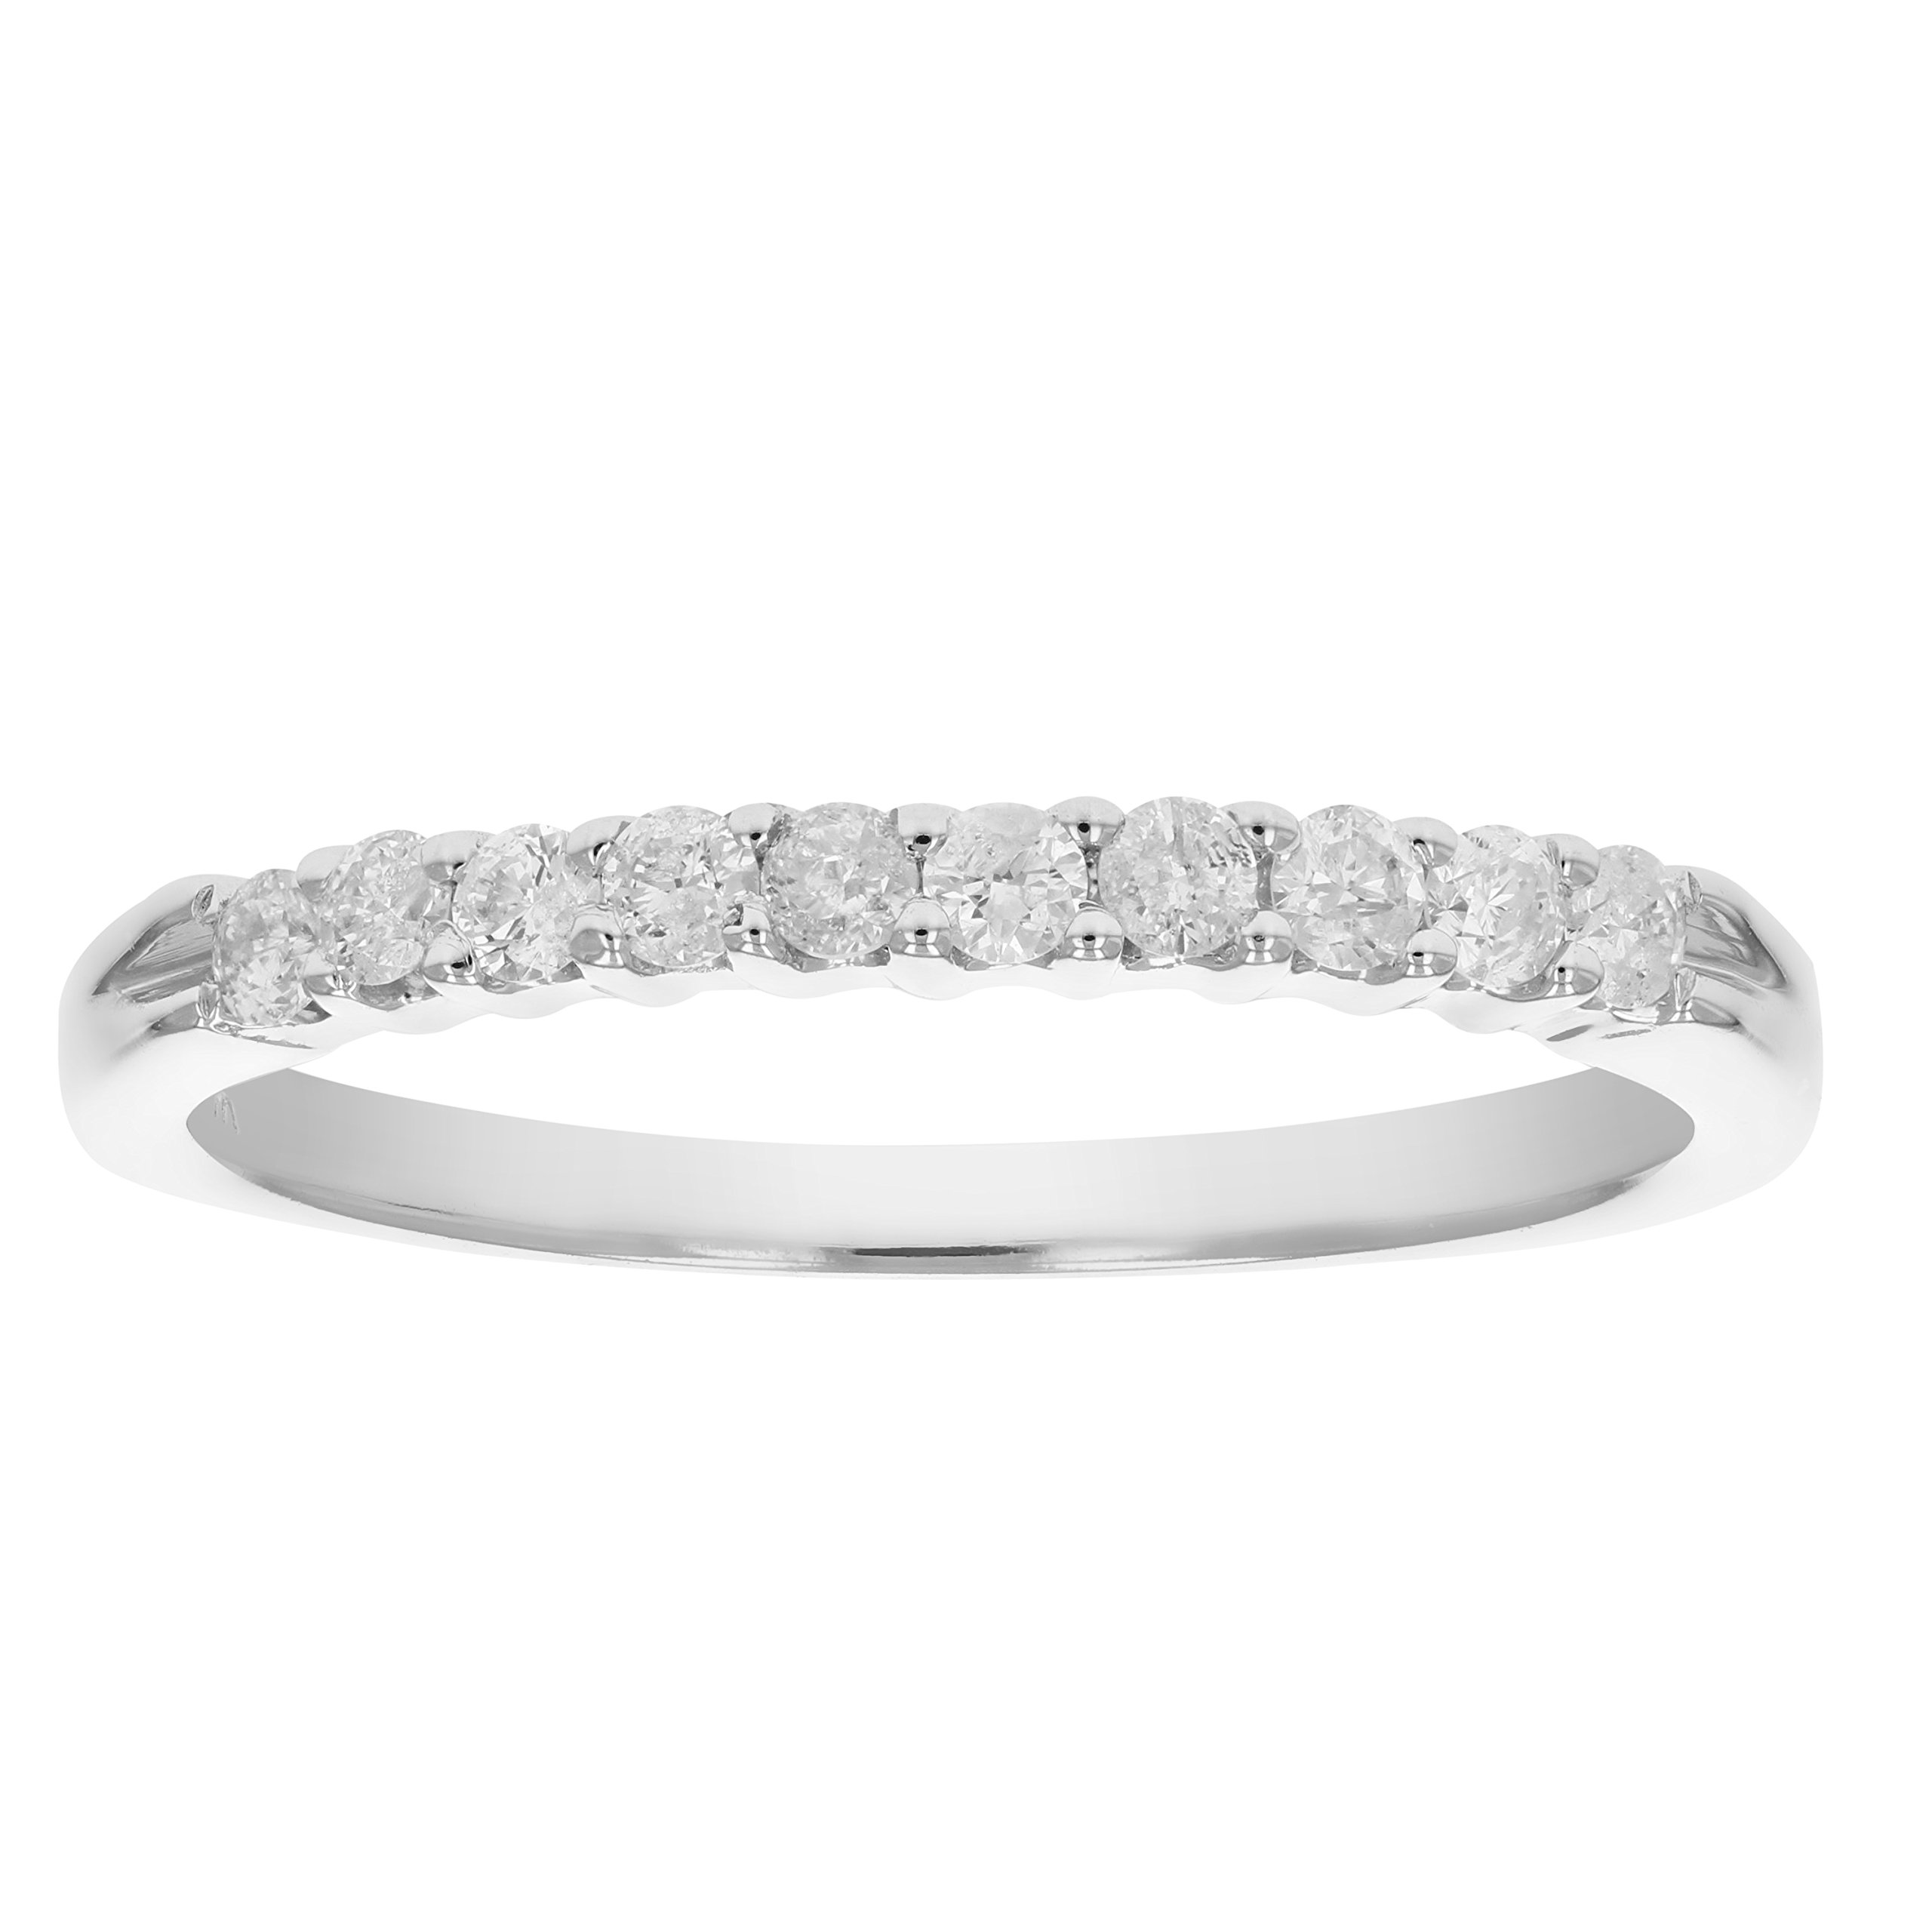 1/4 ctw Diamond Wedding Band in 14K White Gold Size 6